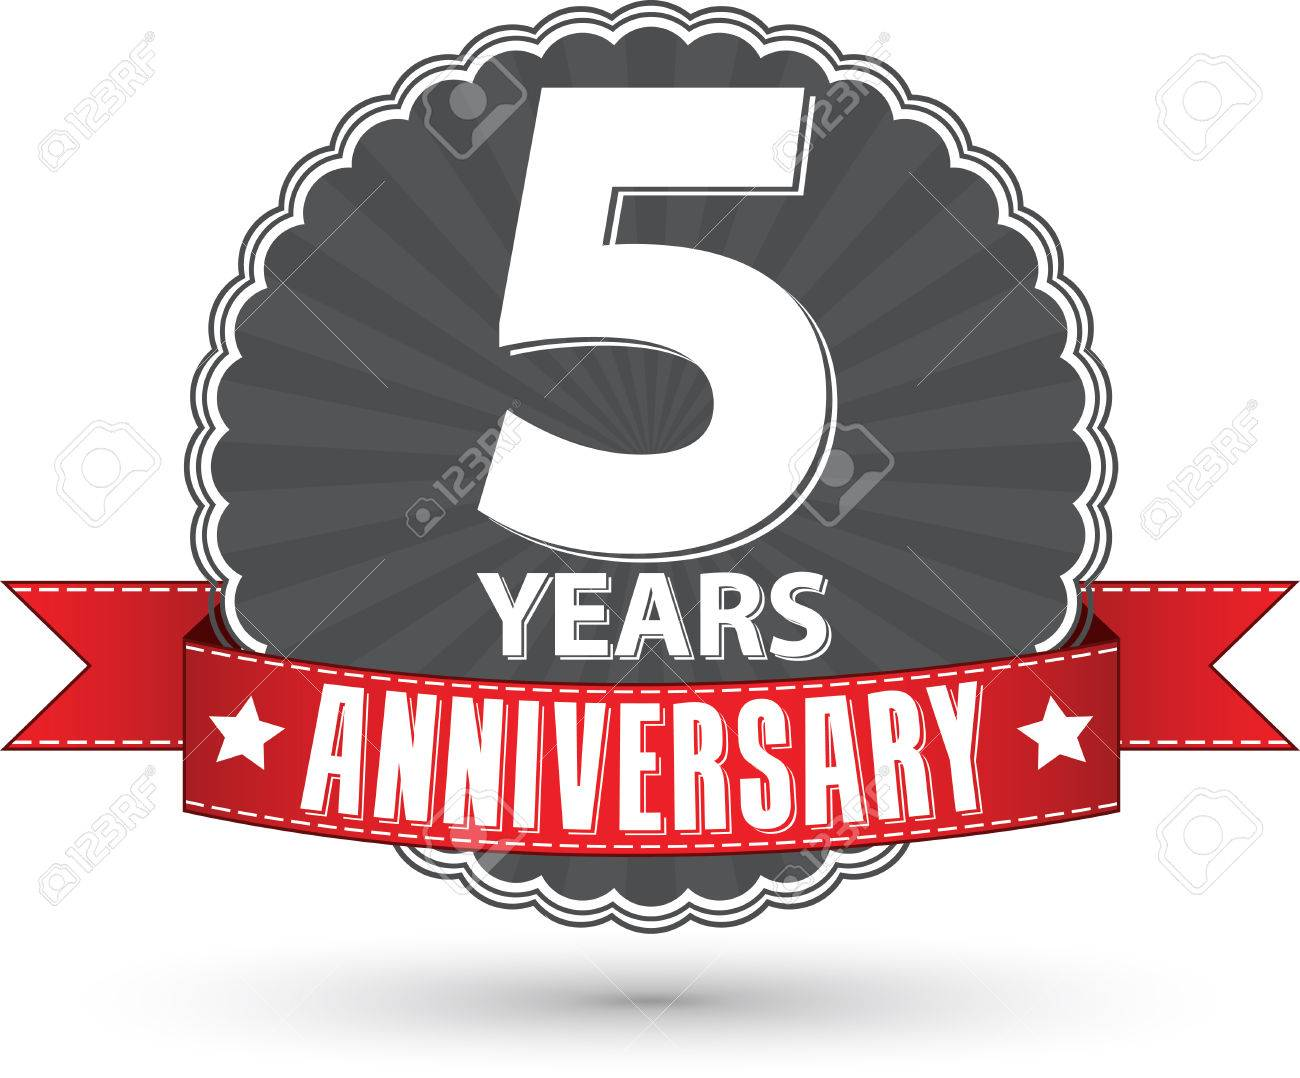 Wedding anniversary 5 years stock photos royalty free business images celebrating 5 years anniversary retro label with red ribbon vector illustration biocorpaavc Gallery